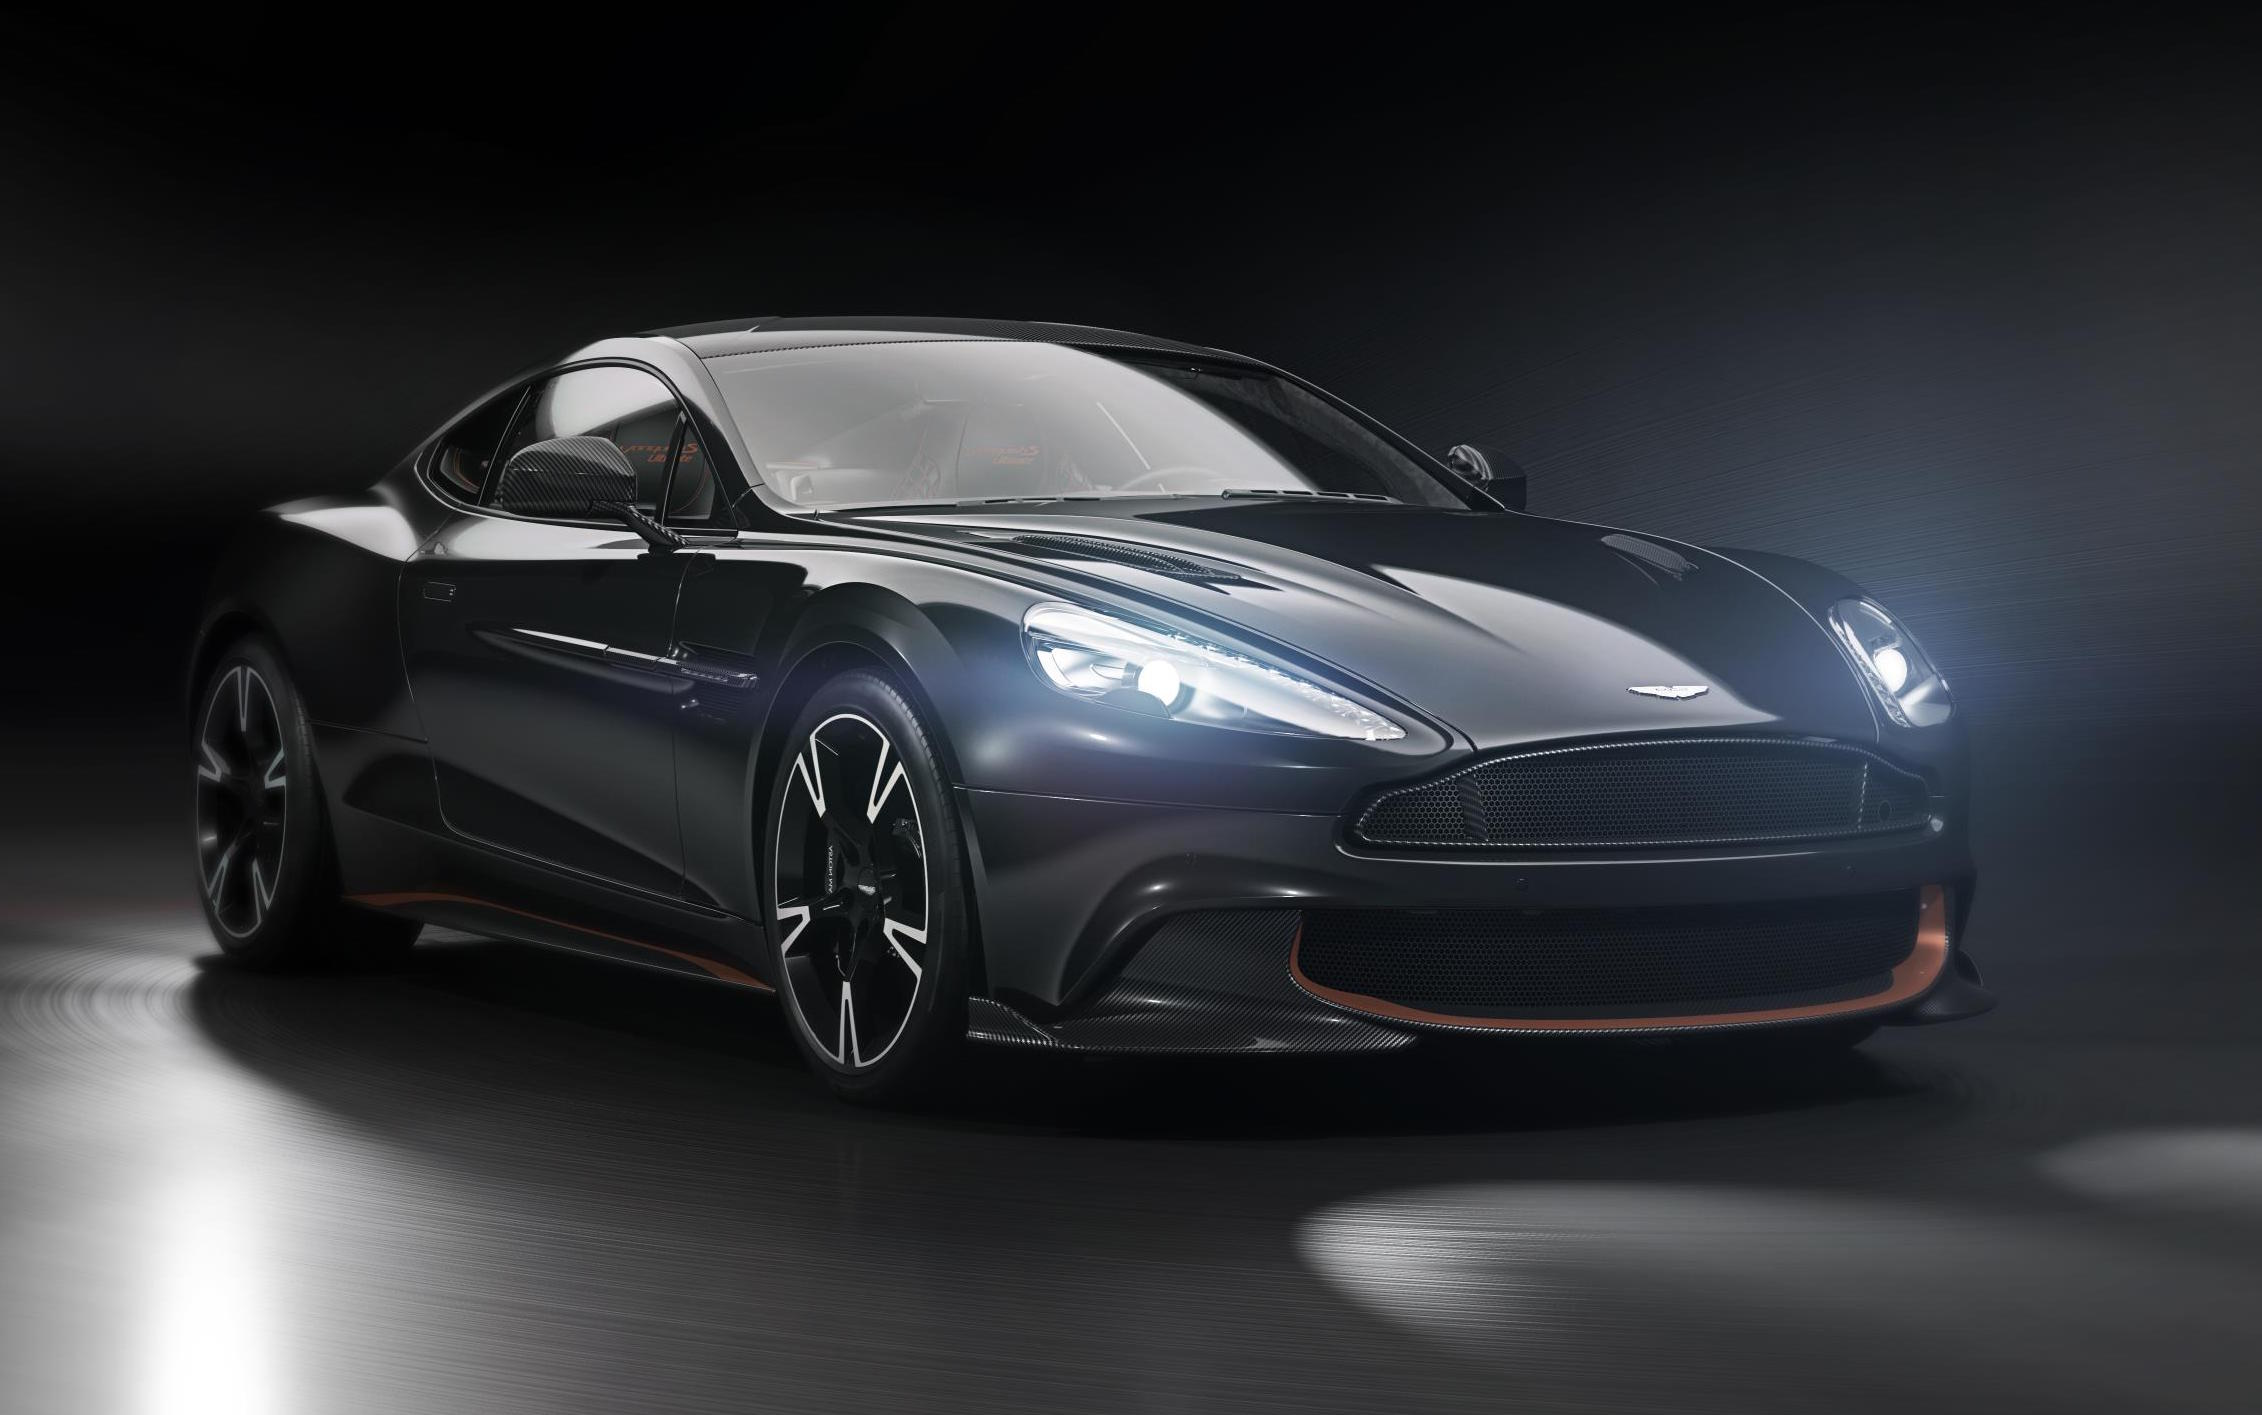 New Aston Martin Vanquish Ultimate Edition Announced